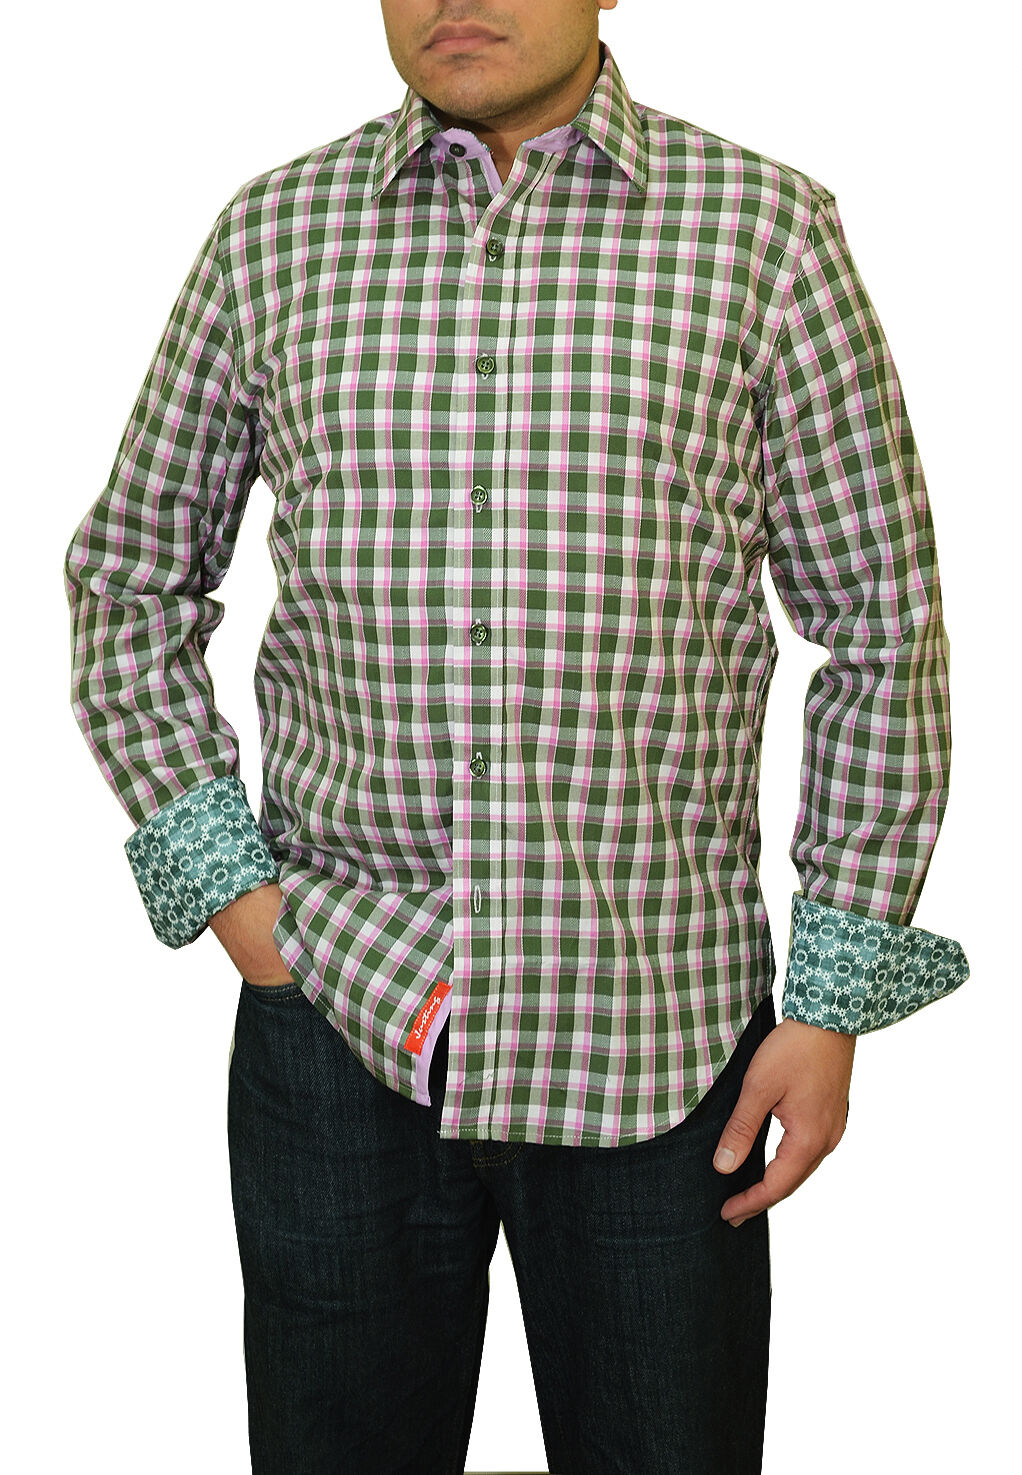 New Justing Pink   White   Green Plaid Striped Button Down Euro Casual Shirt